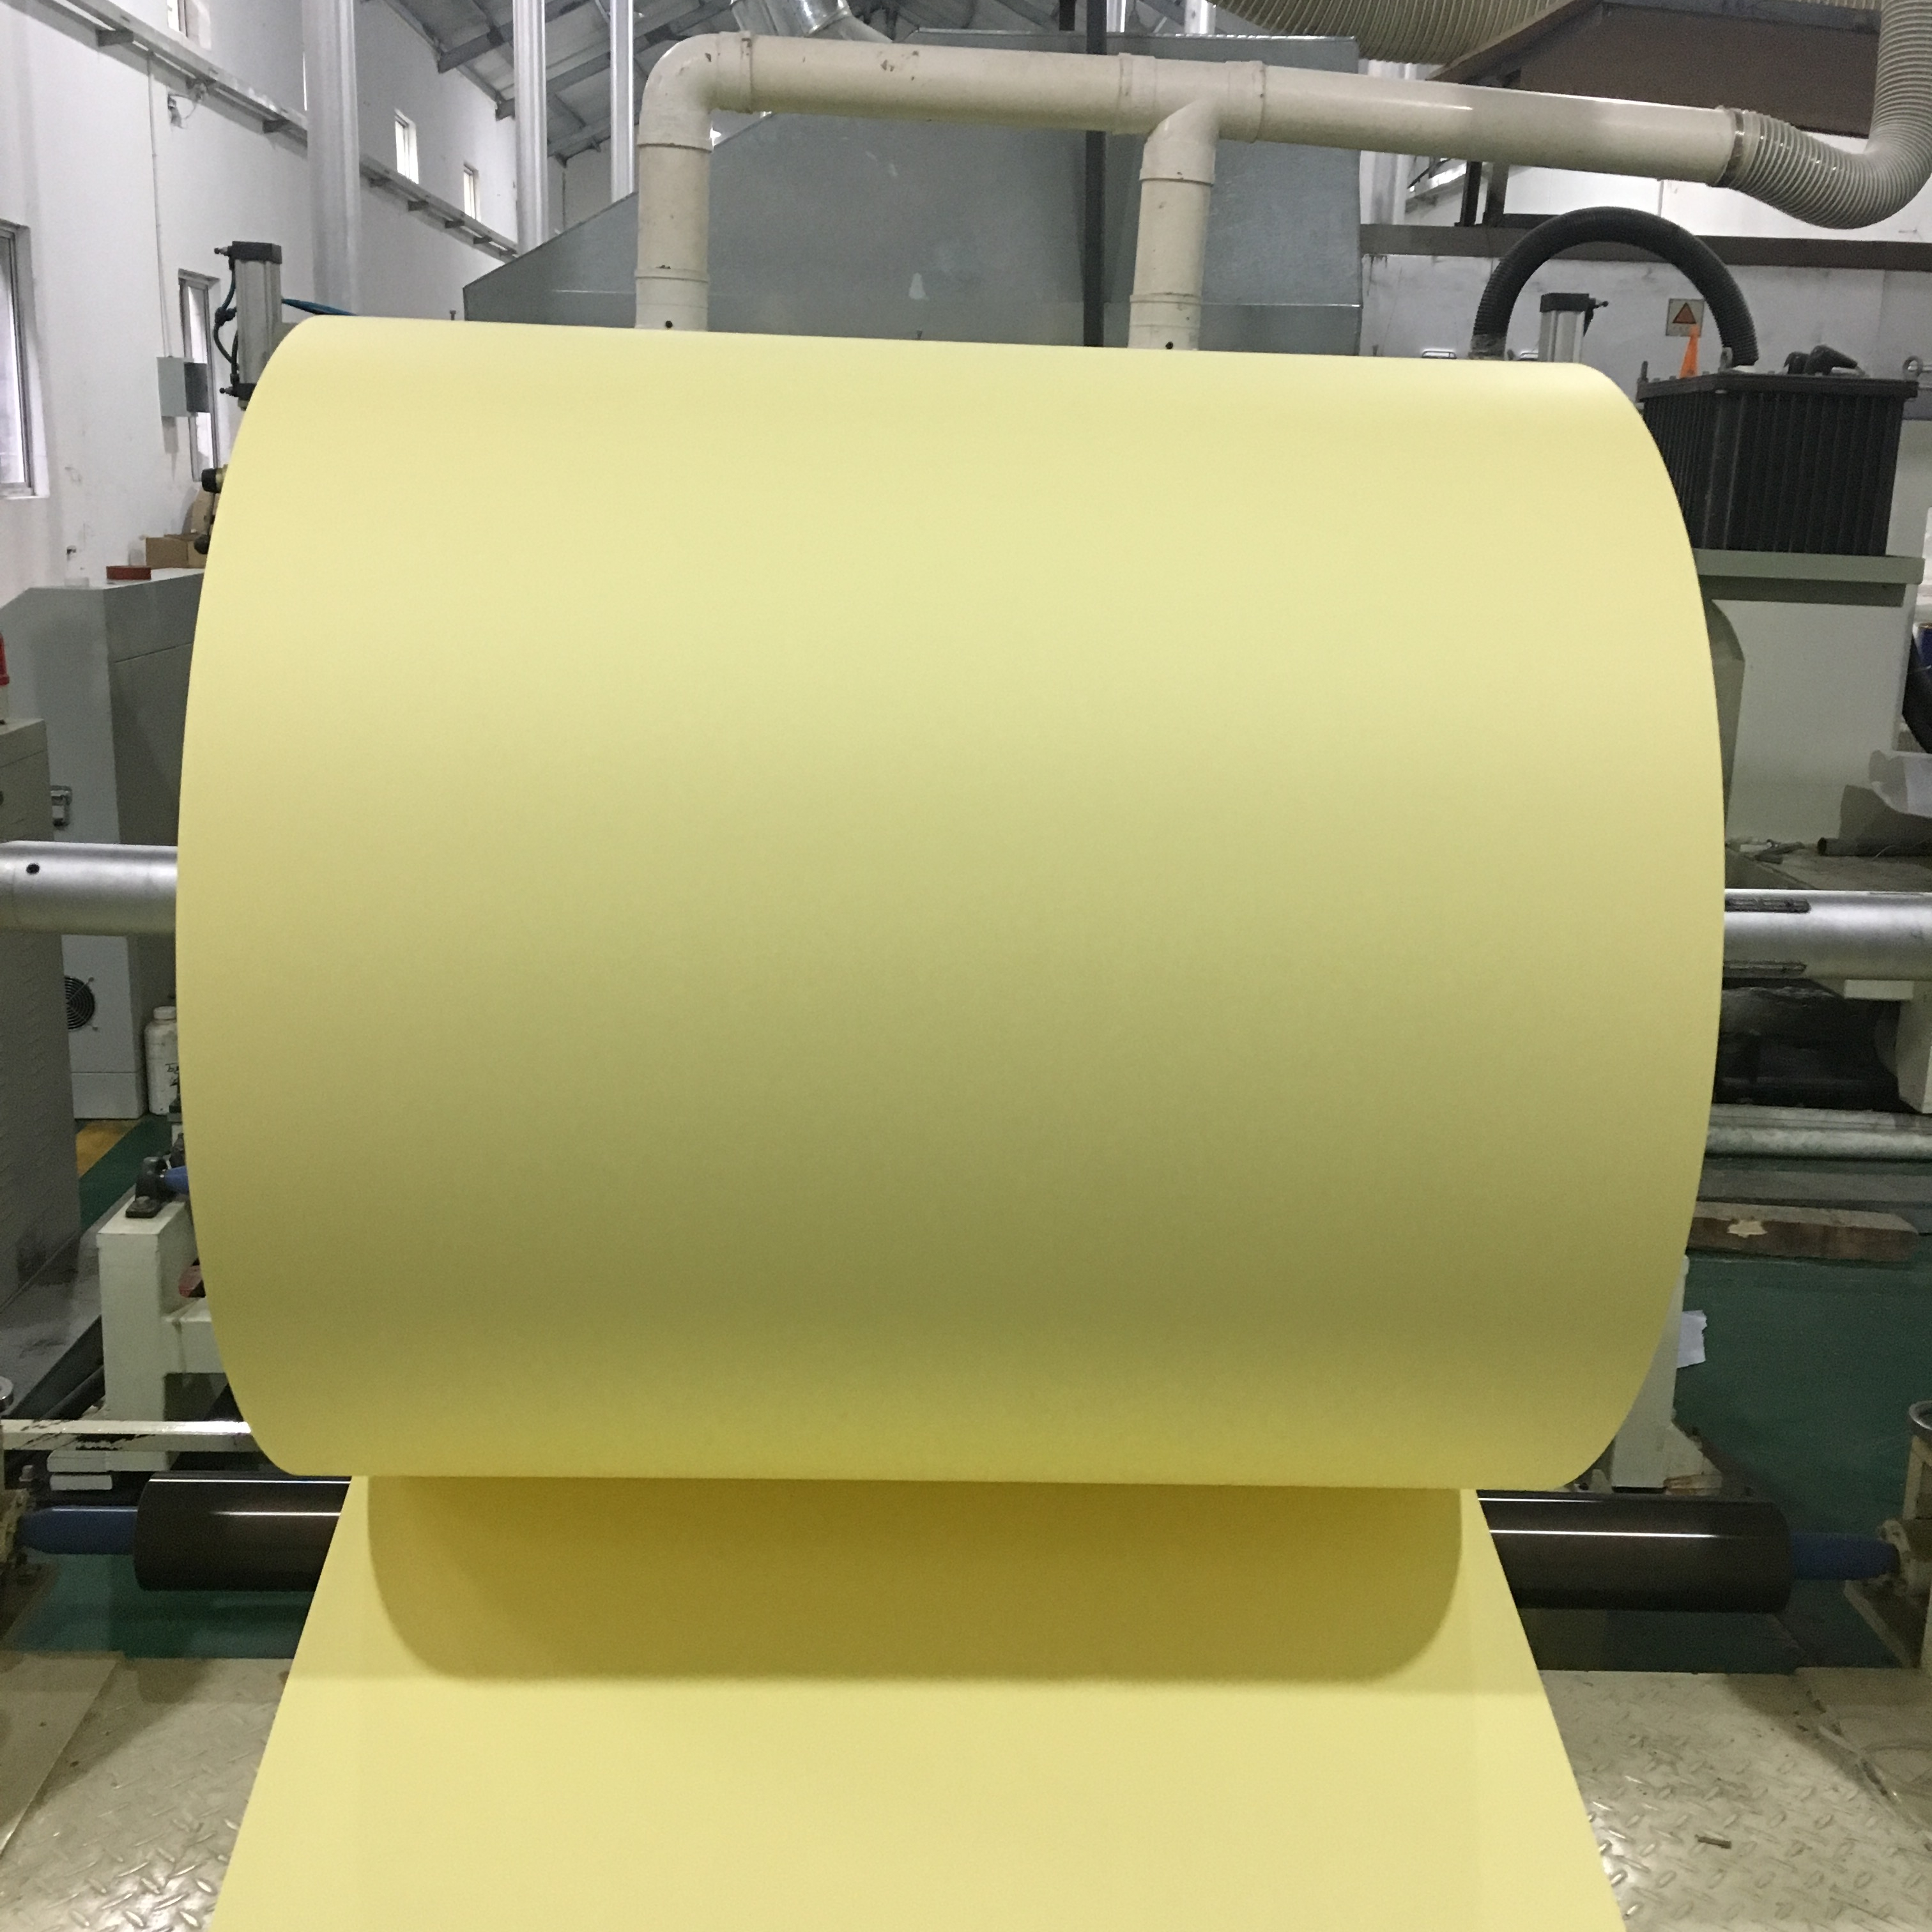 China Fabrikant Geel/Wit Siliconen Gecoat Release Papier Rolls